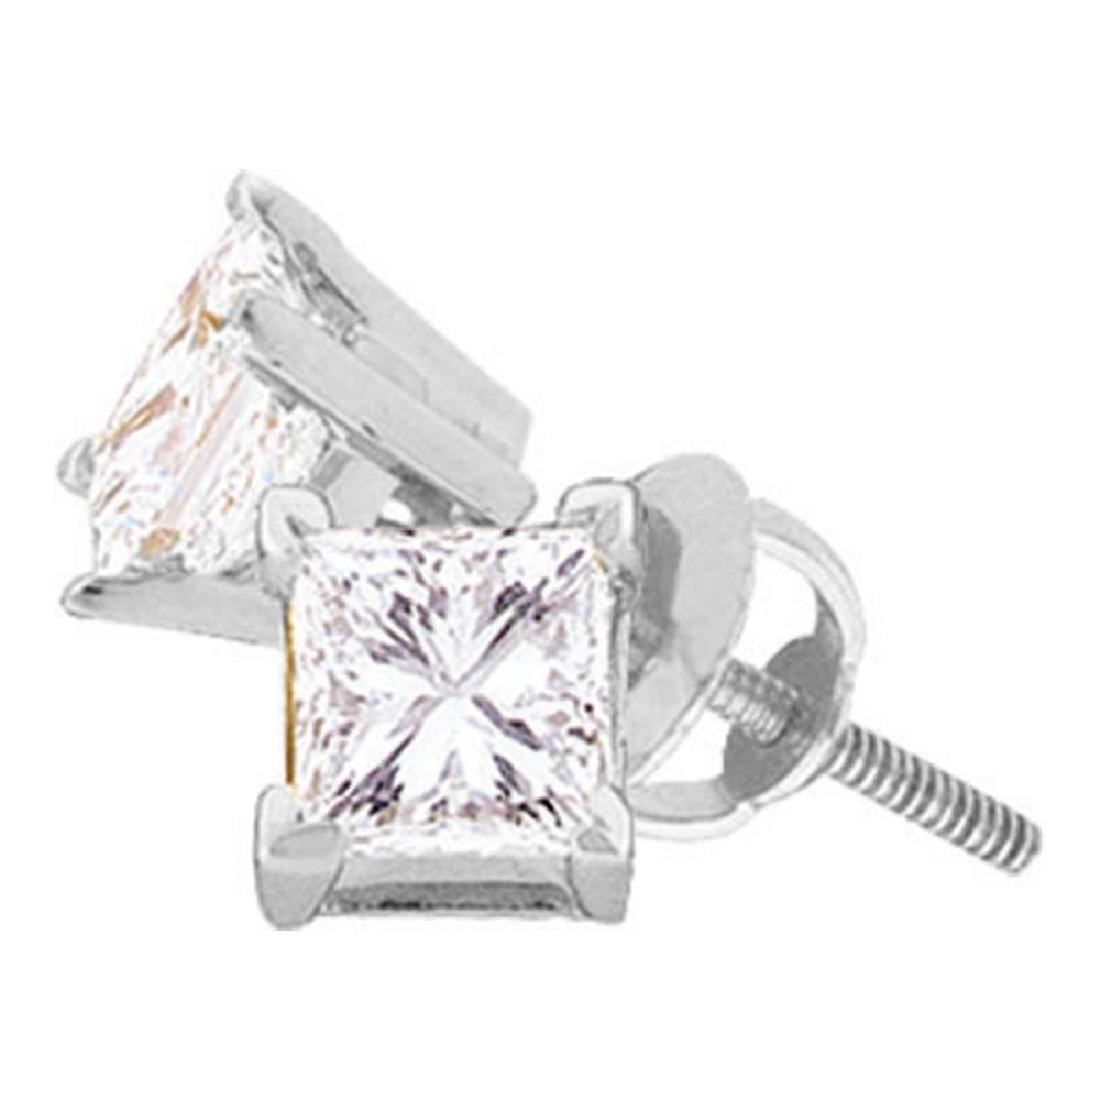 0.25 CTW Princess Diamond Solitaire Stud Earrings 14KT